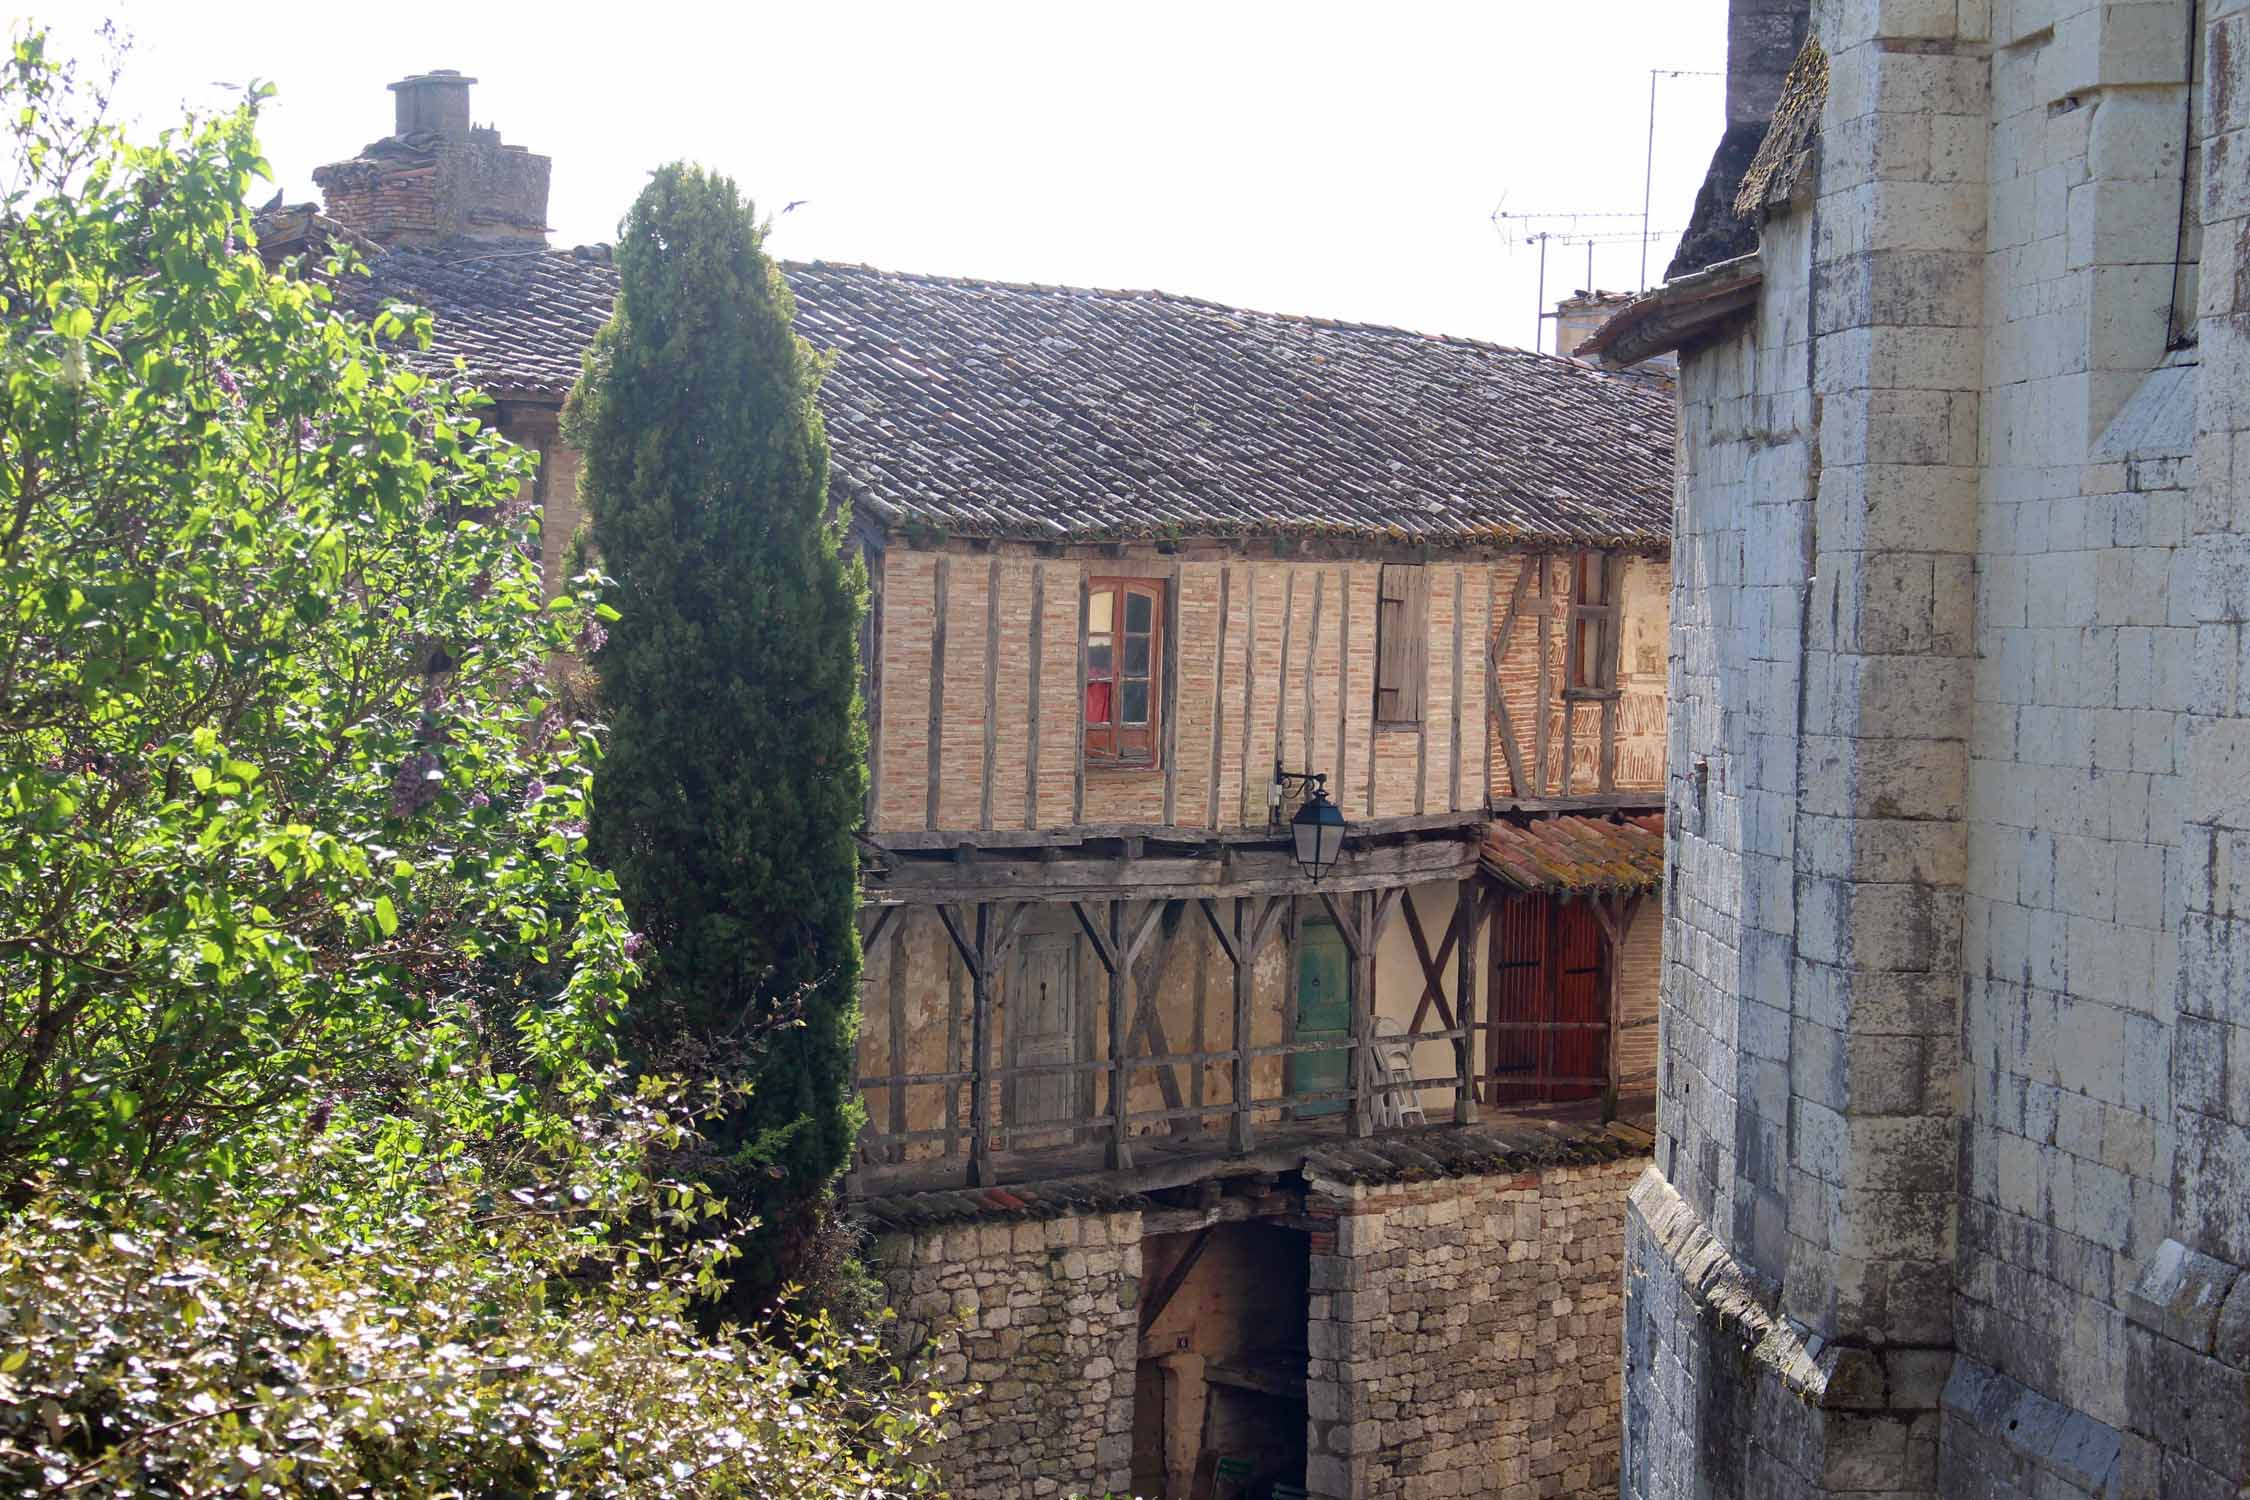 Montpezat-de-Quercy, typical house